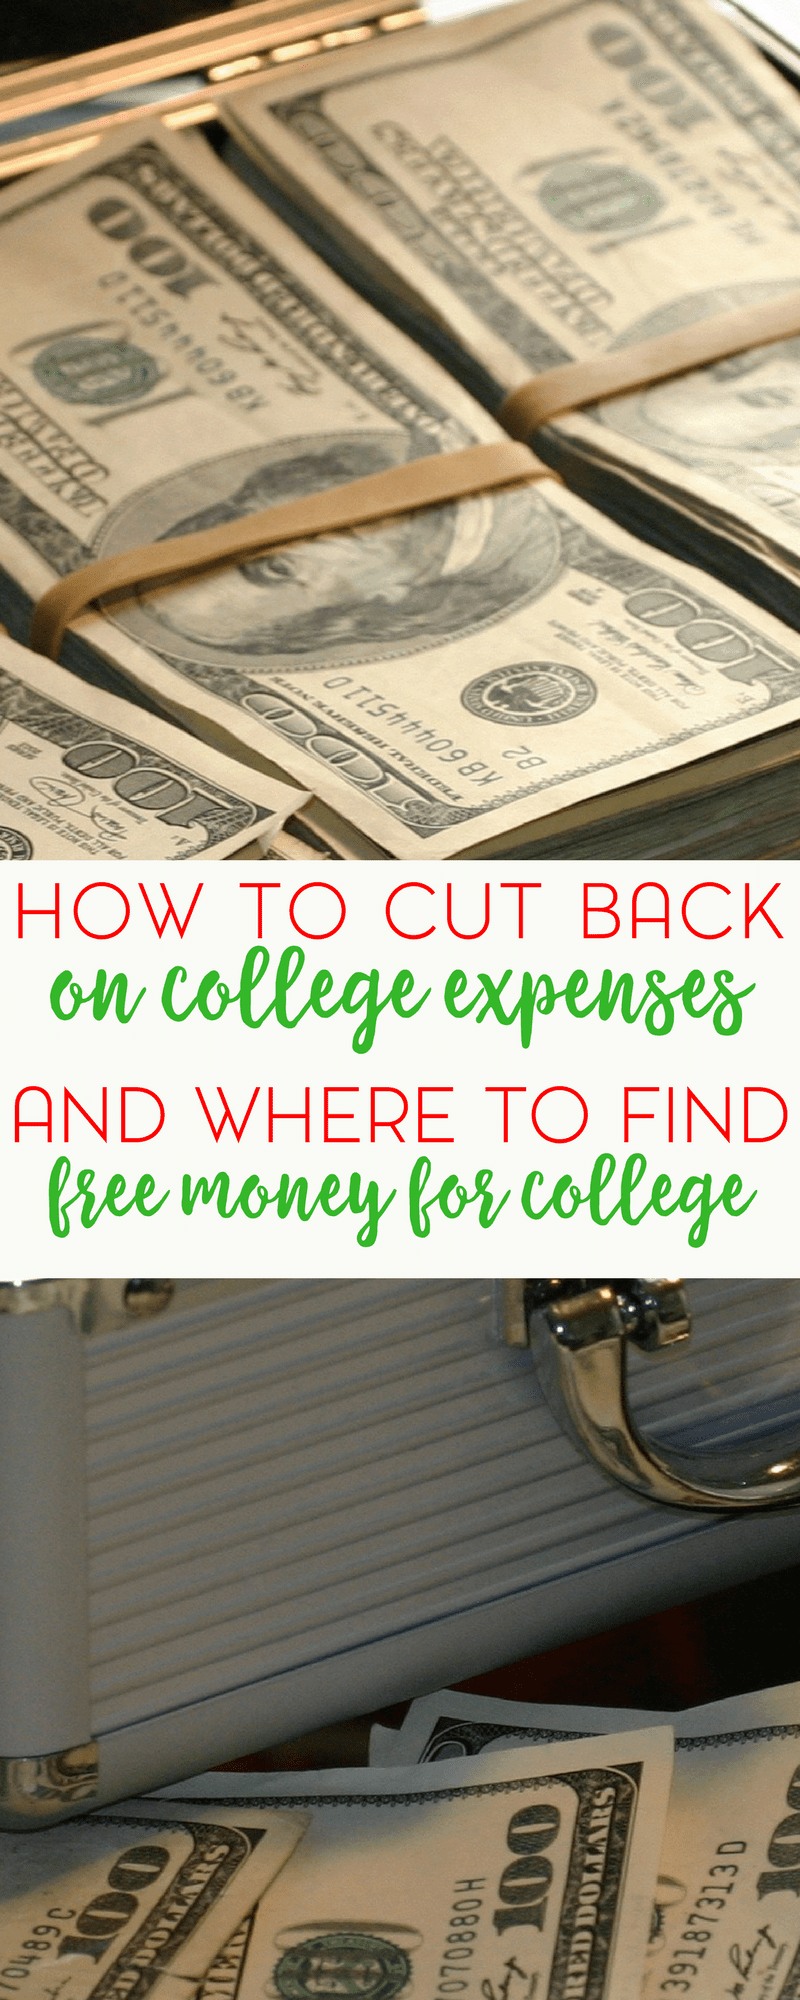 If the thought of paying for college is giving you nightmares, fear not! She's sharing ideas for where to find free money for college.